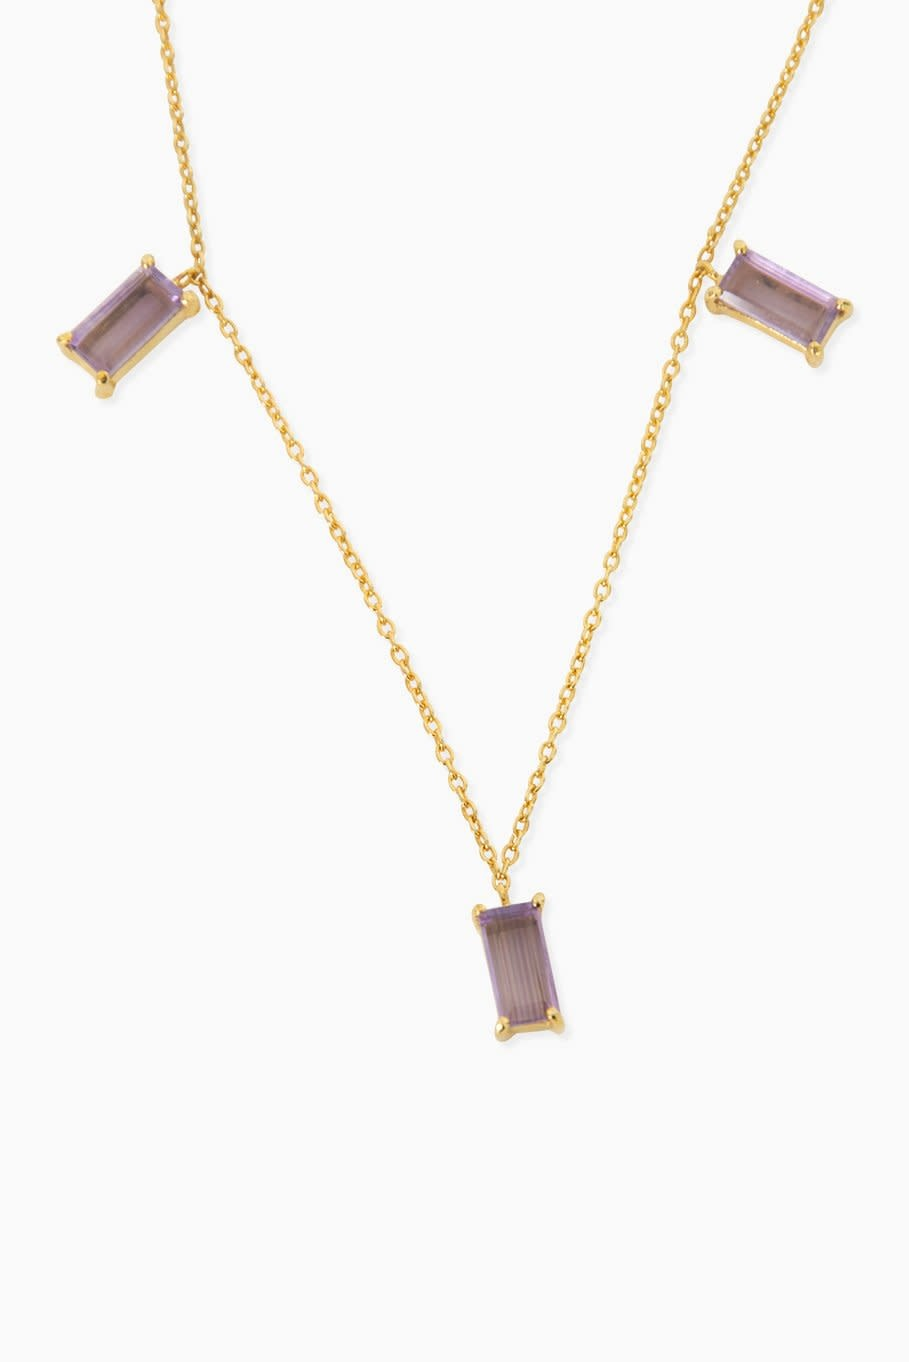 Détail Necklace Joley amethyst gold plated